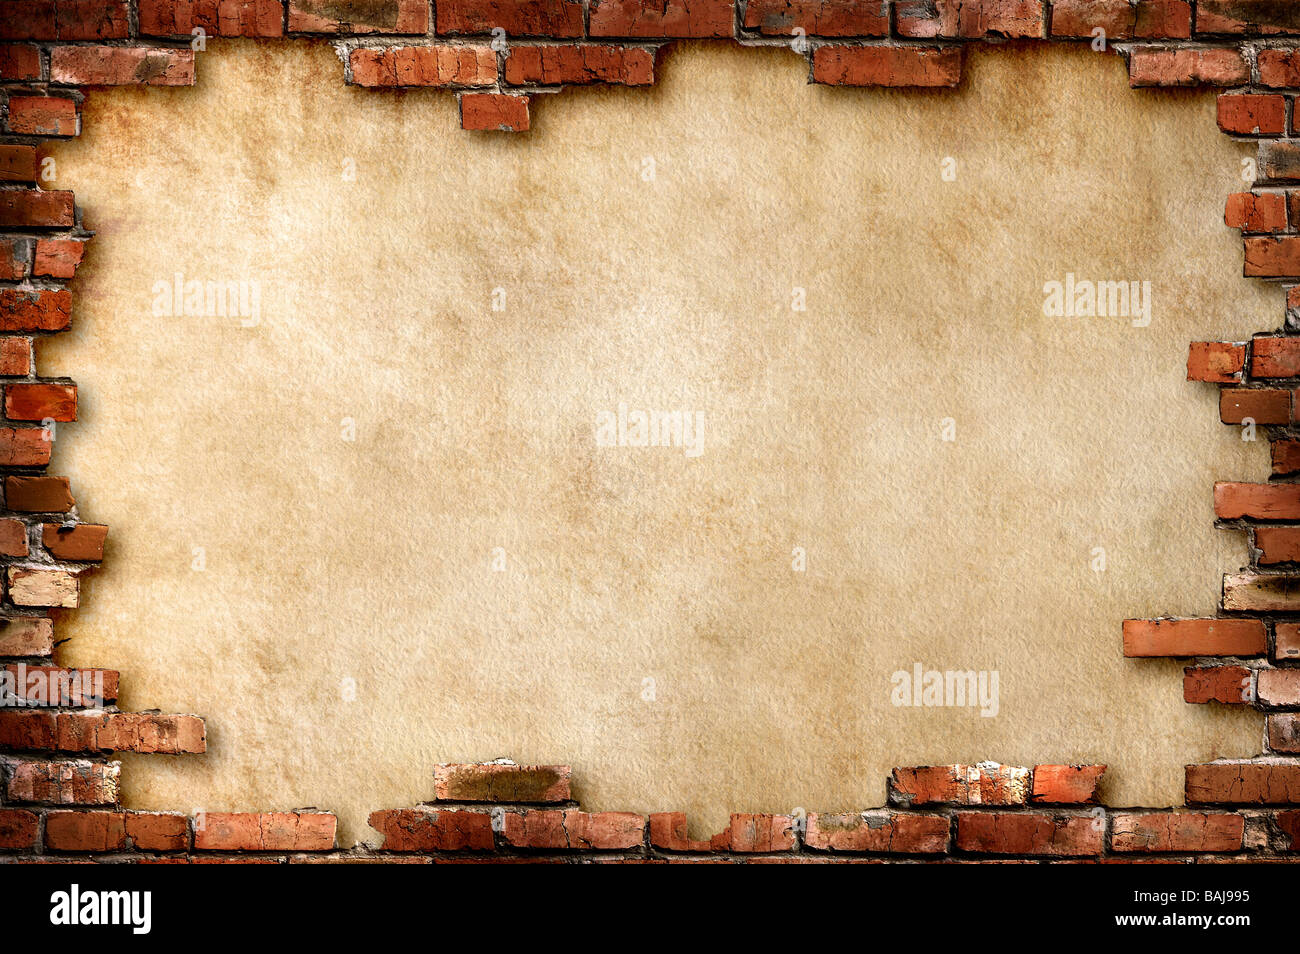 Grungy parchment paper background surrounded by red brick frame - Stock Image